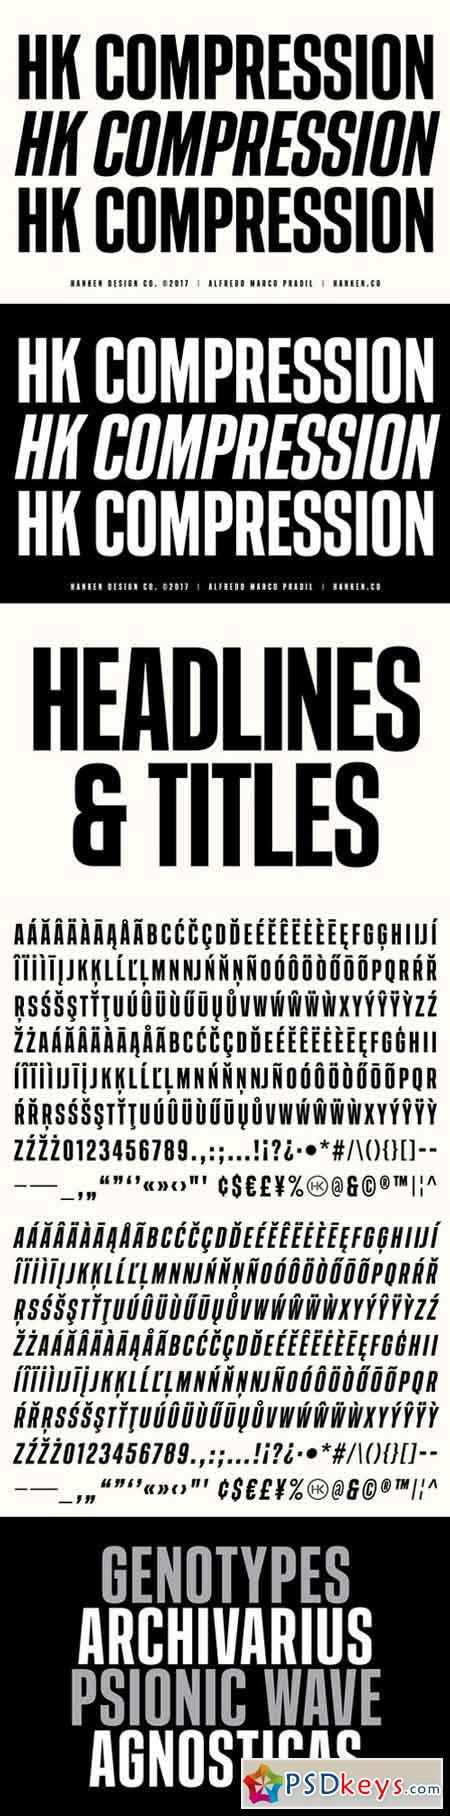 fonts » page 17 » Free Download Photoshop Vector Stock image